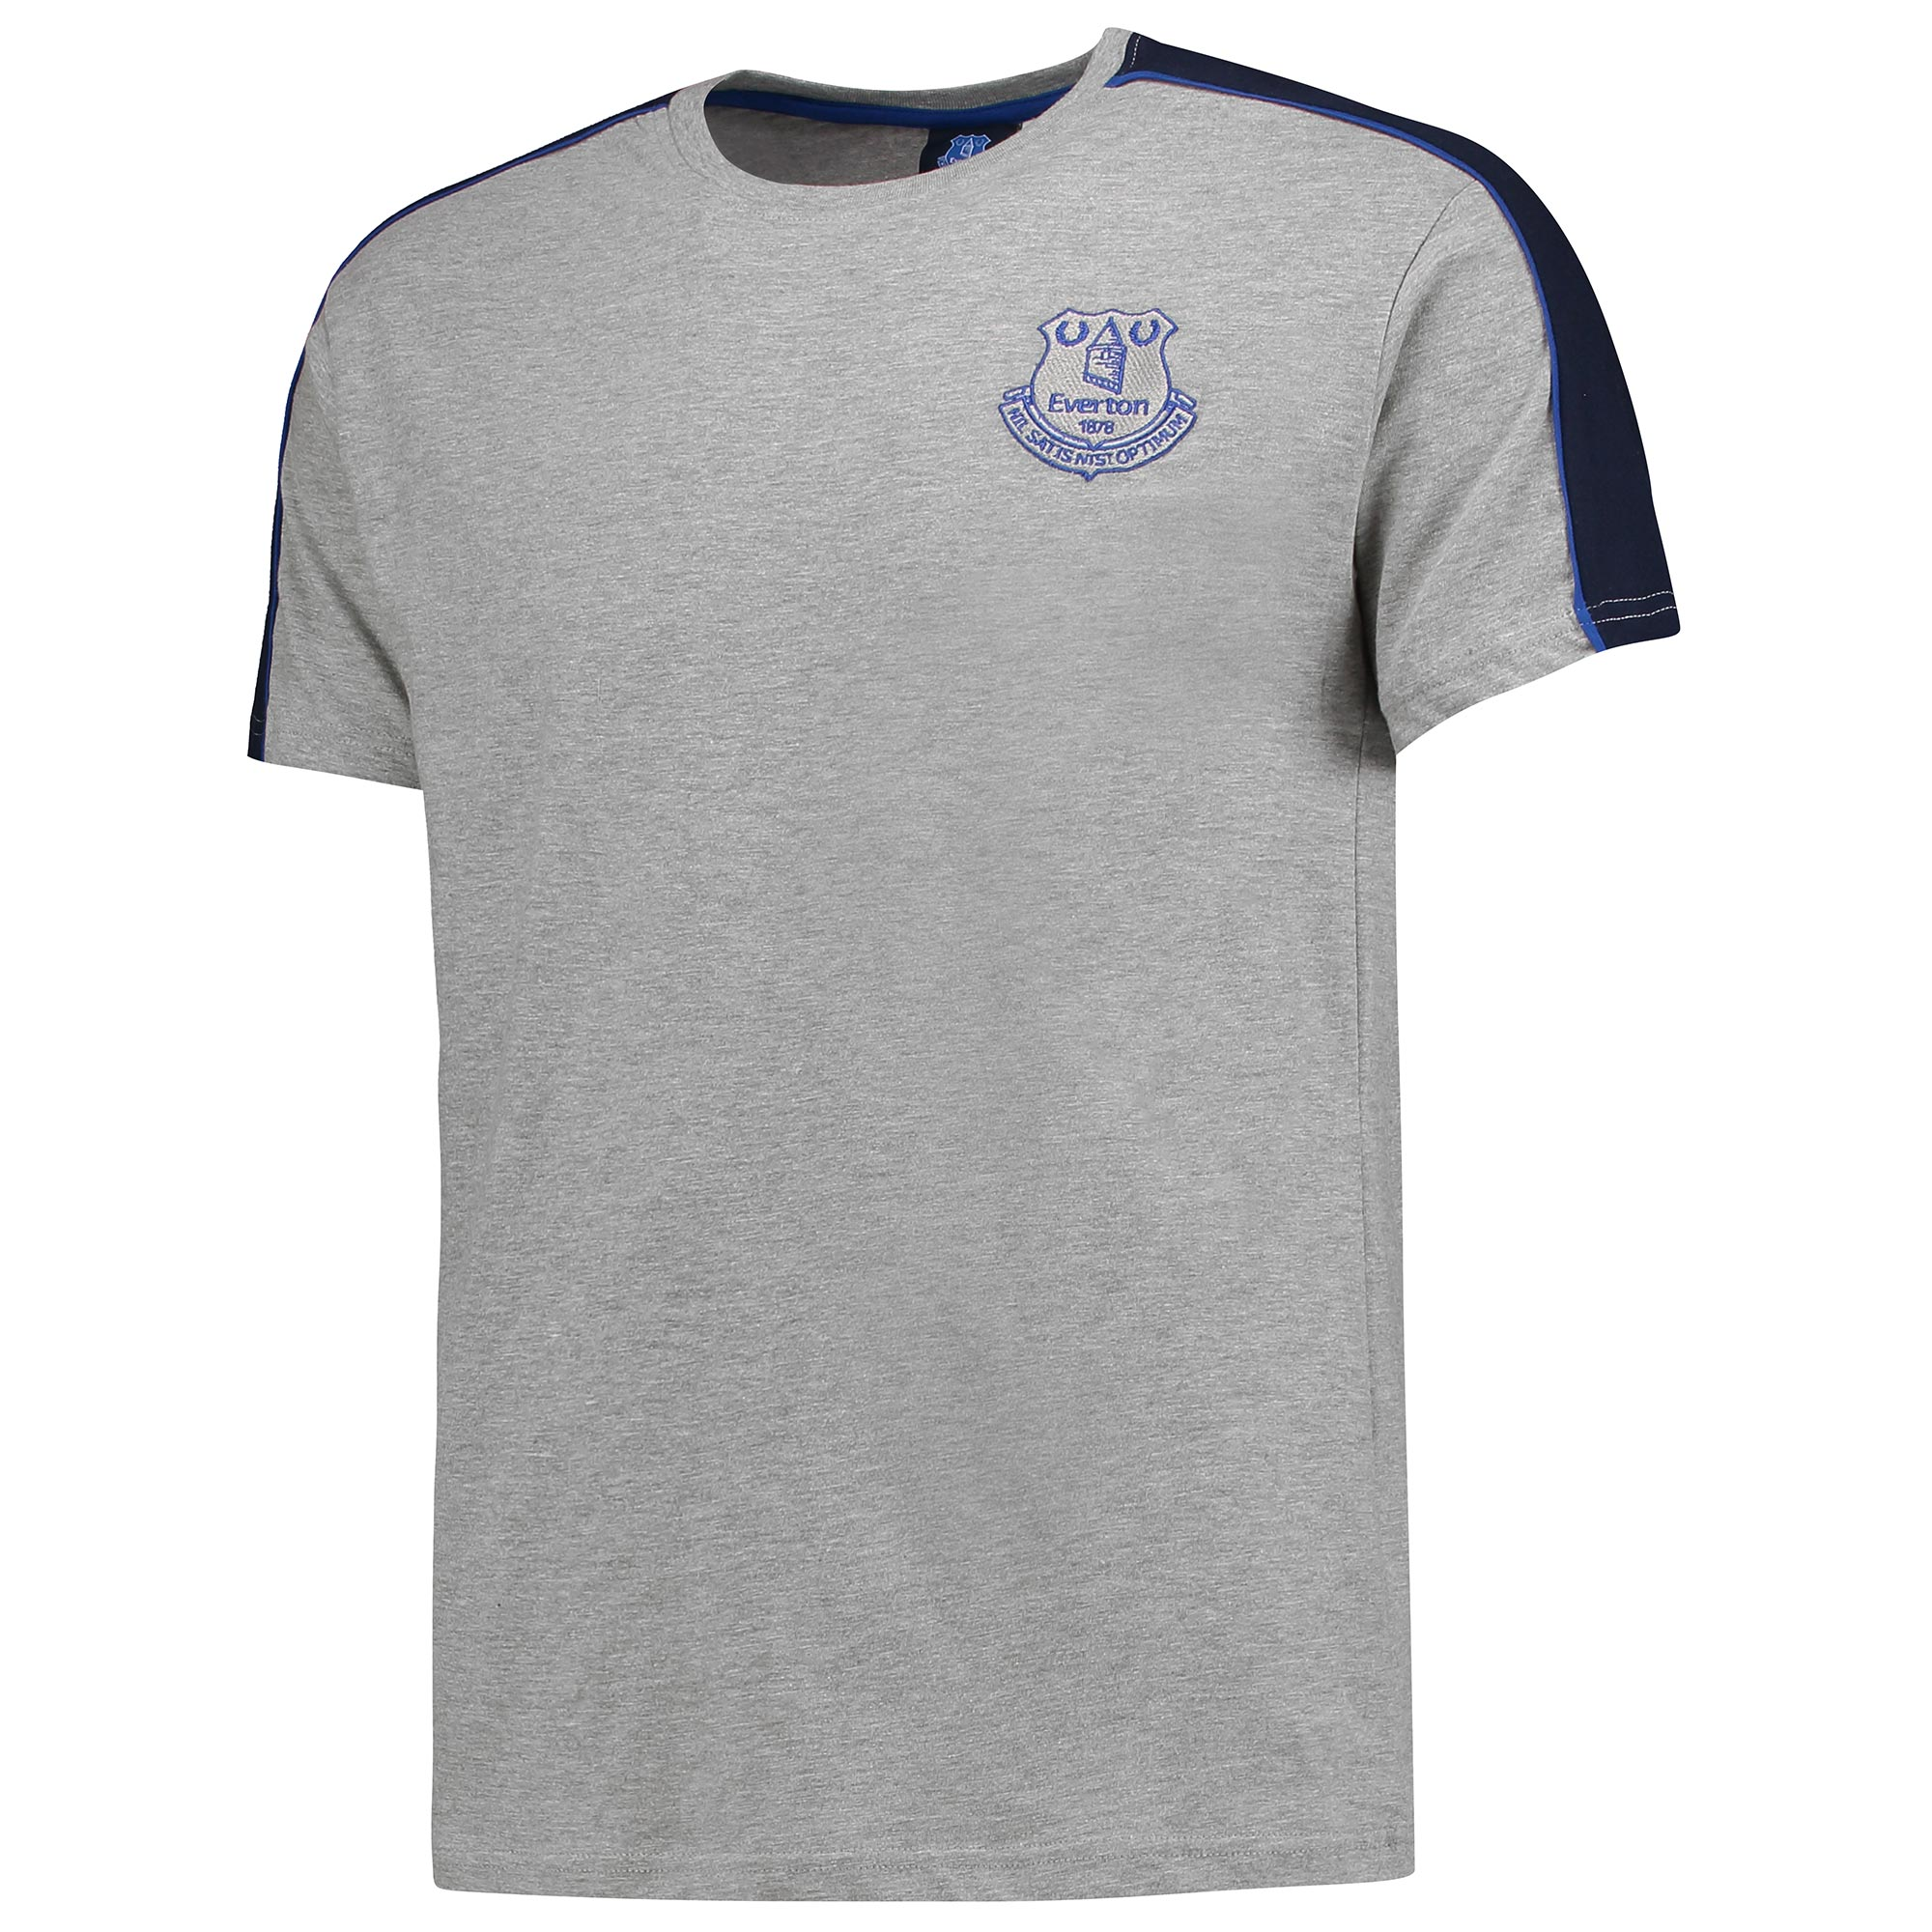 Everton T-Shirt - Grey Marl